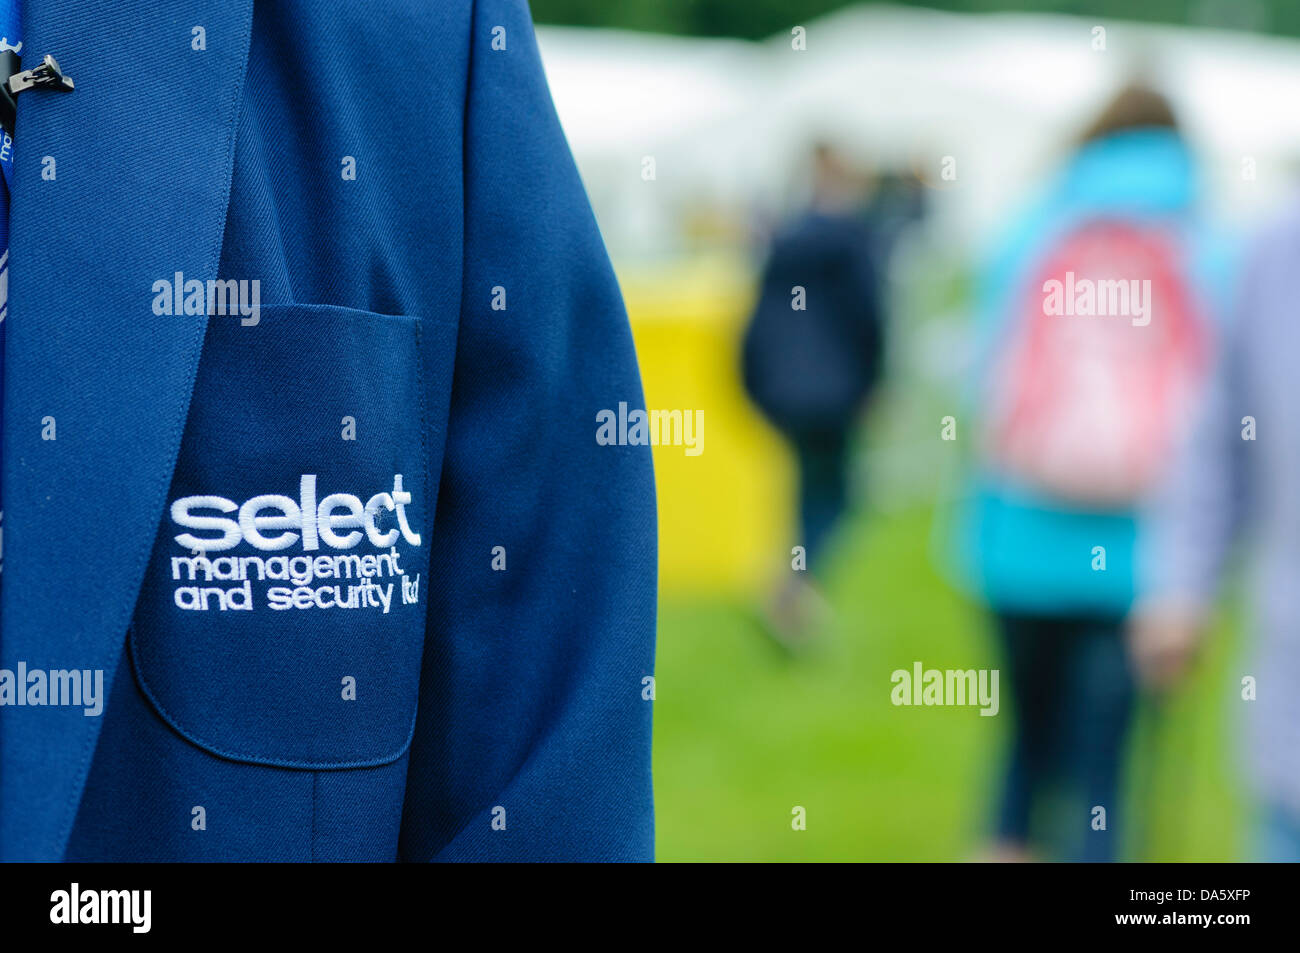 Security guard wears a formal uniform for Select Security, a provider of security and event staff in Northern Ireland. - Stock Image